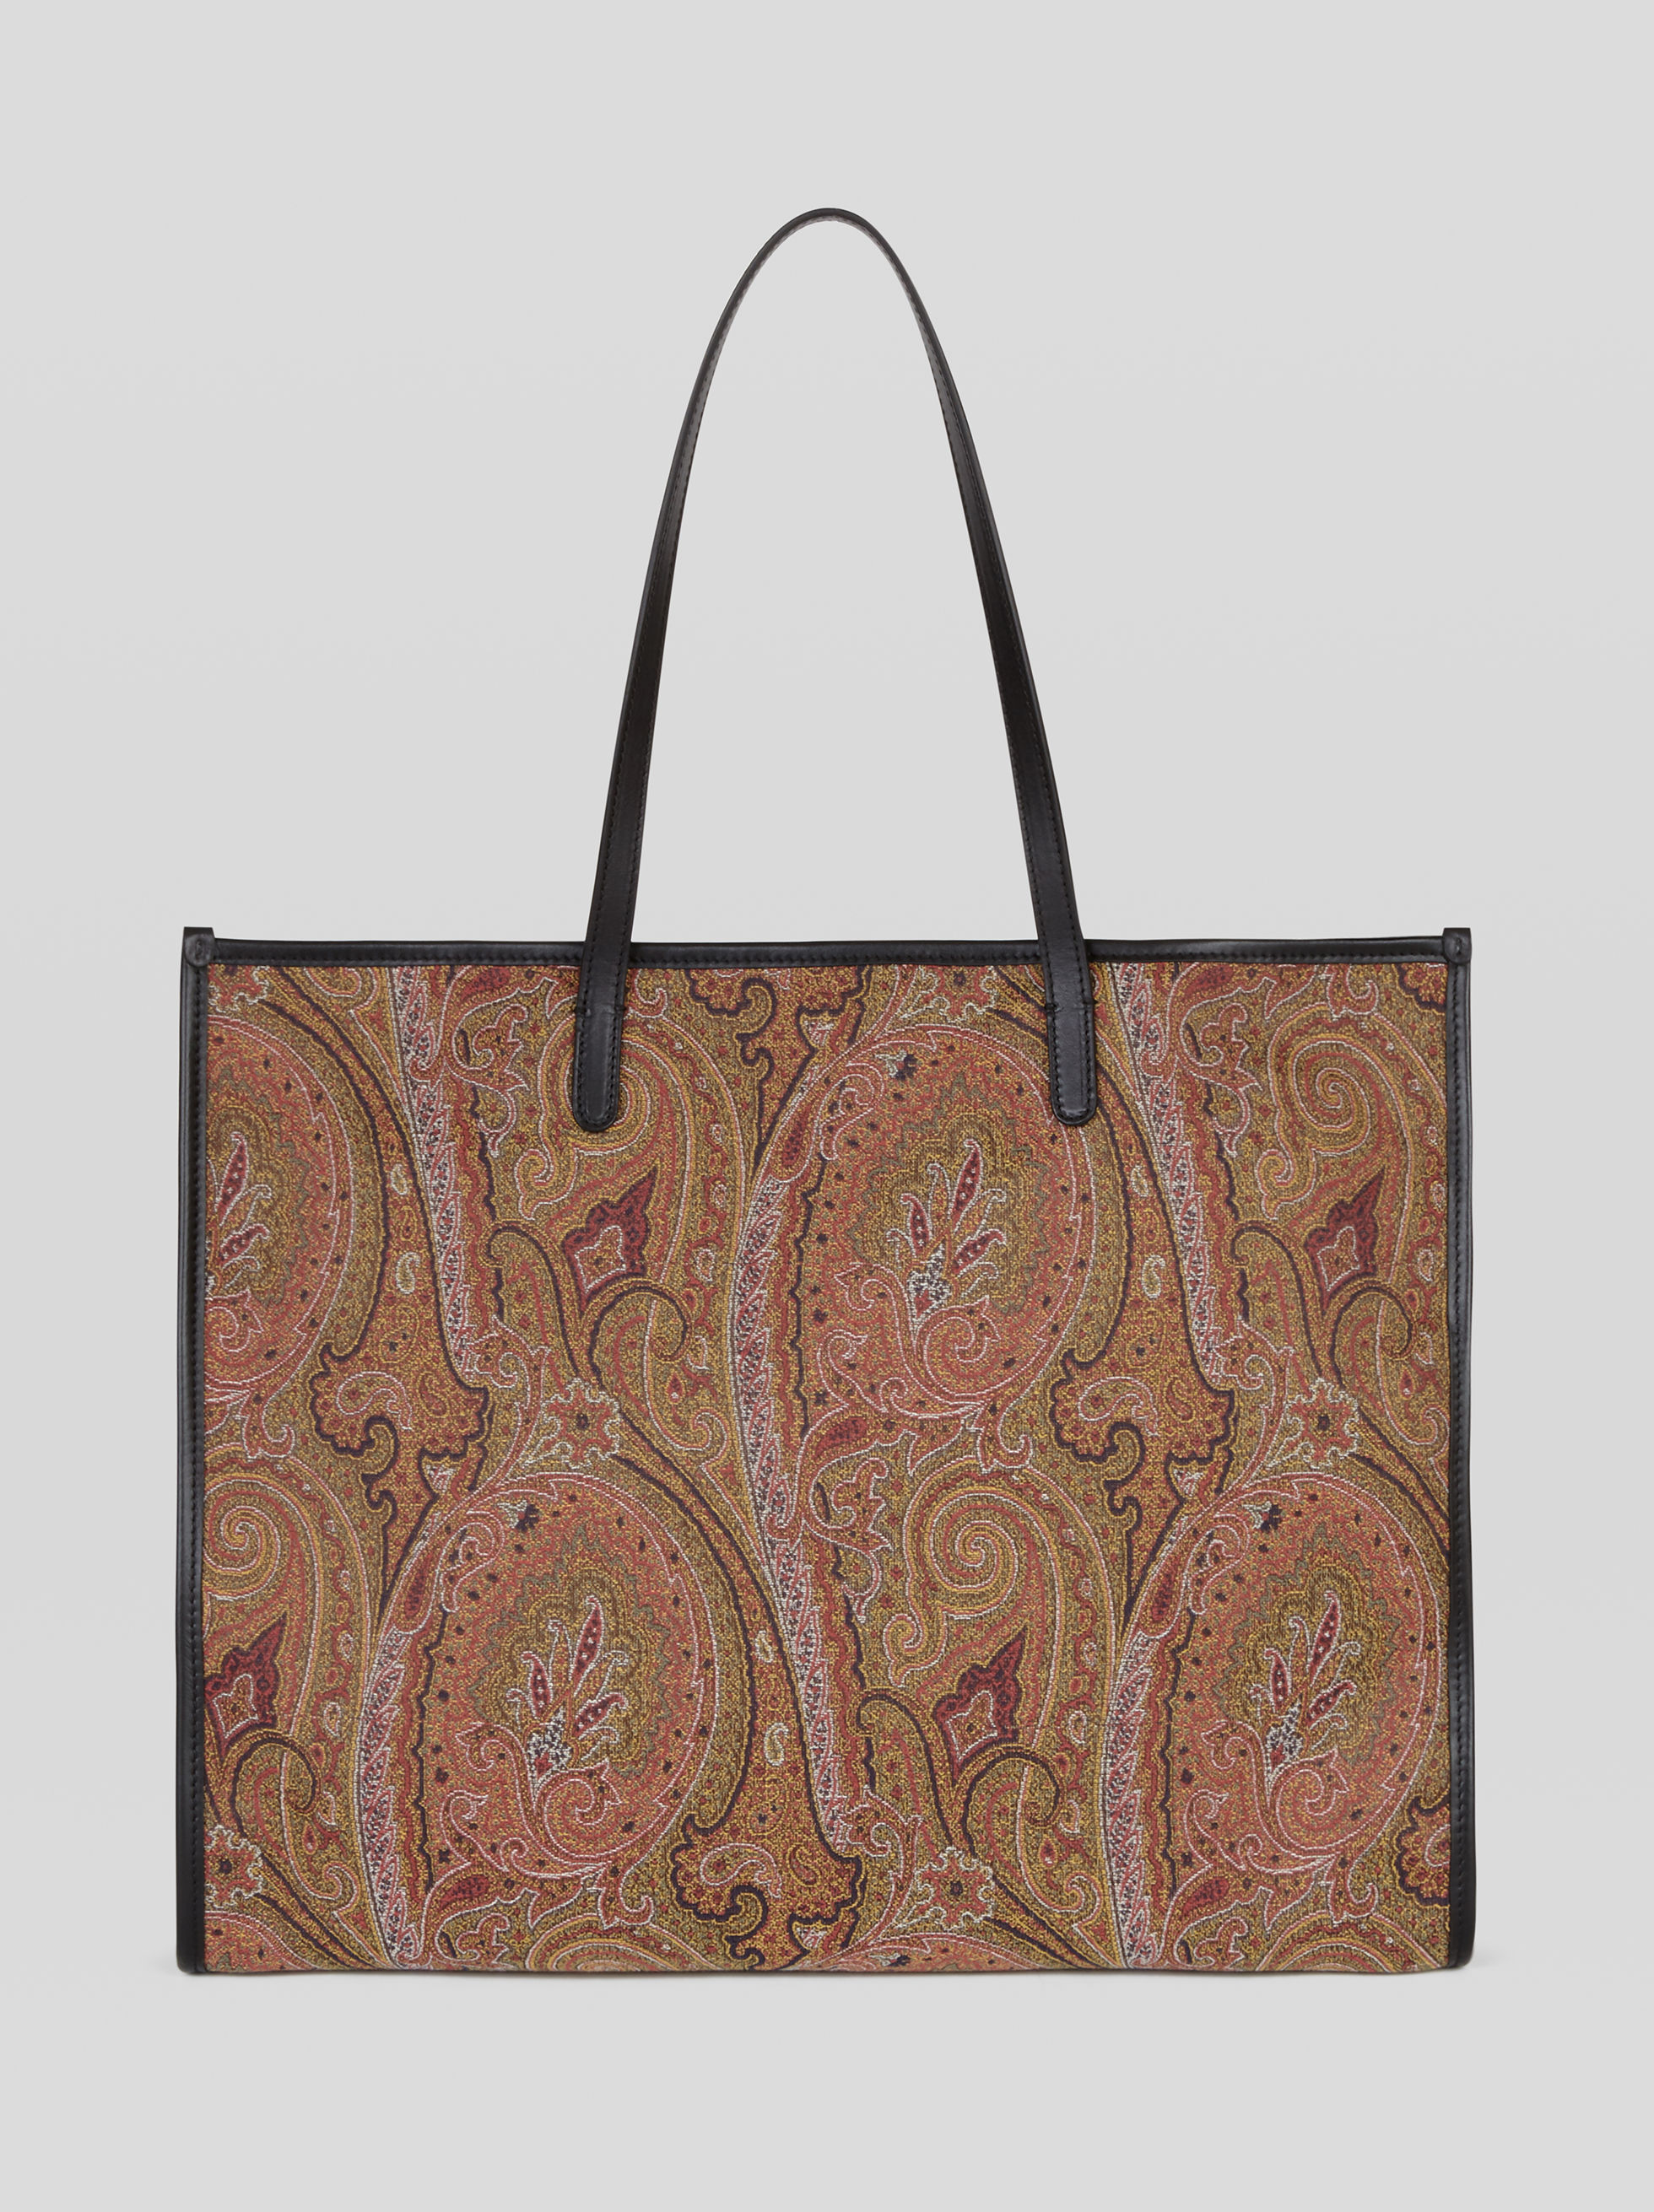 LARGE SHOPPING BAG WITH EMBROIDERY